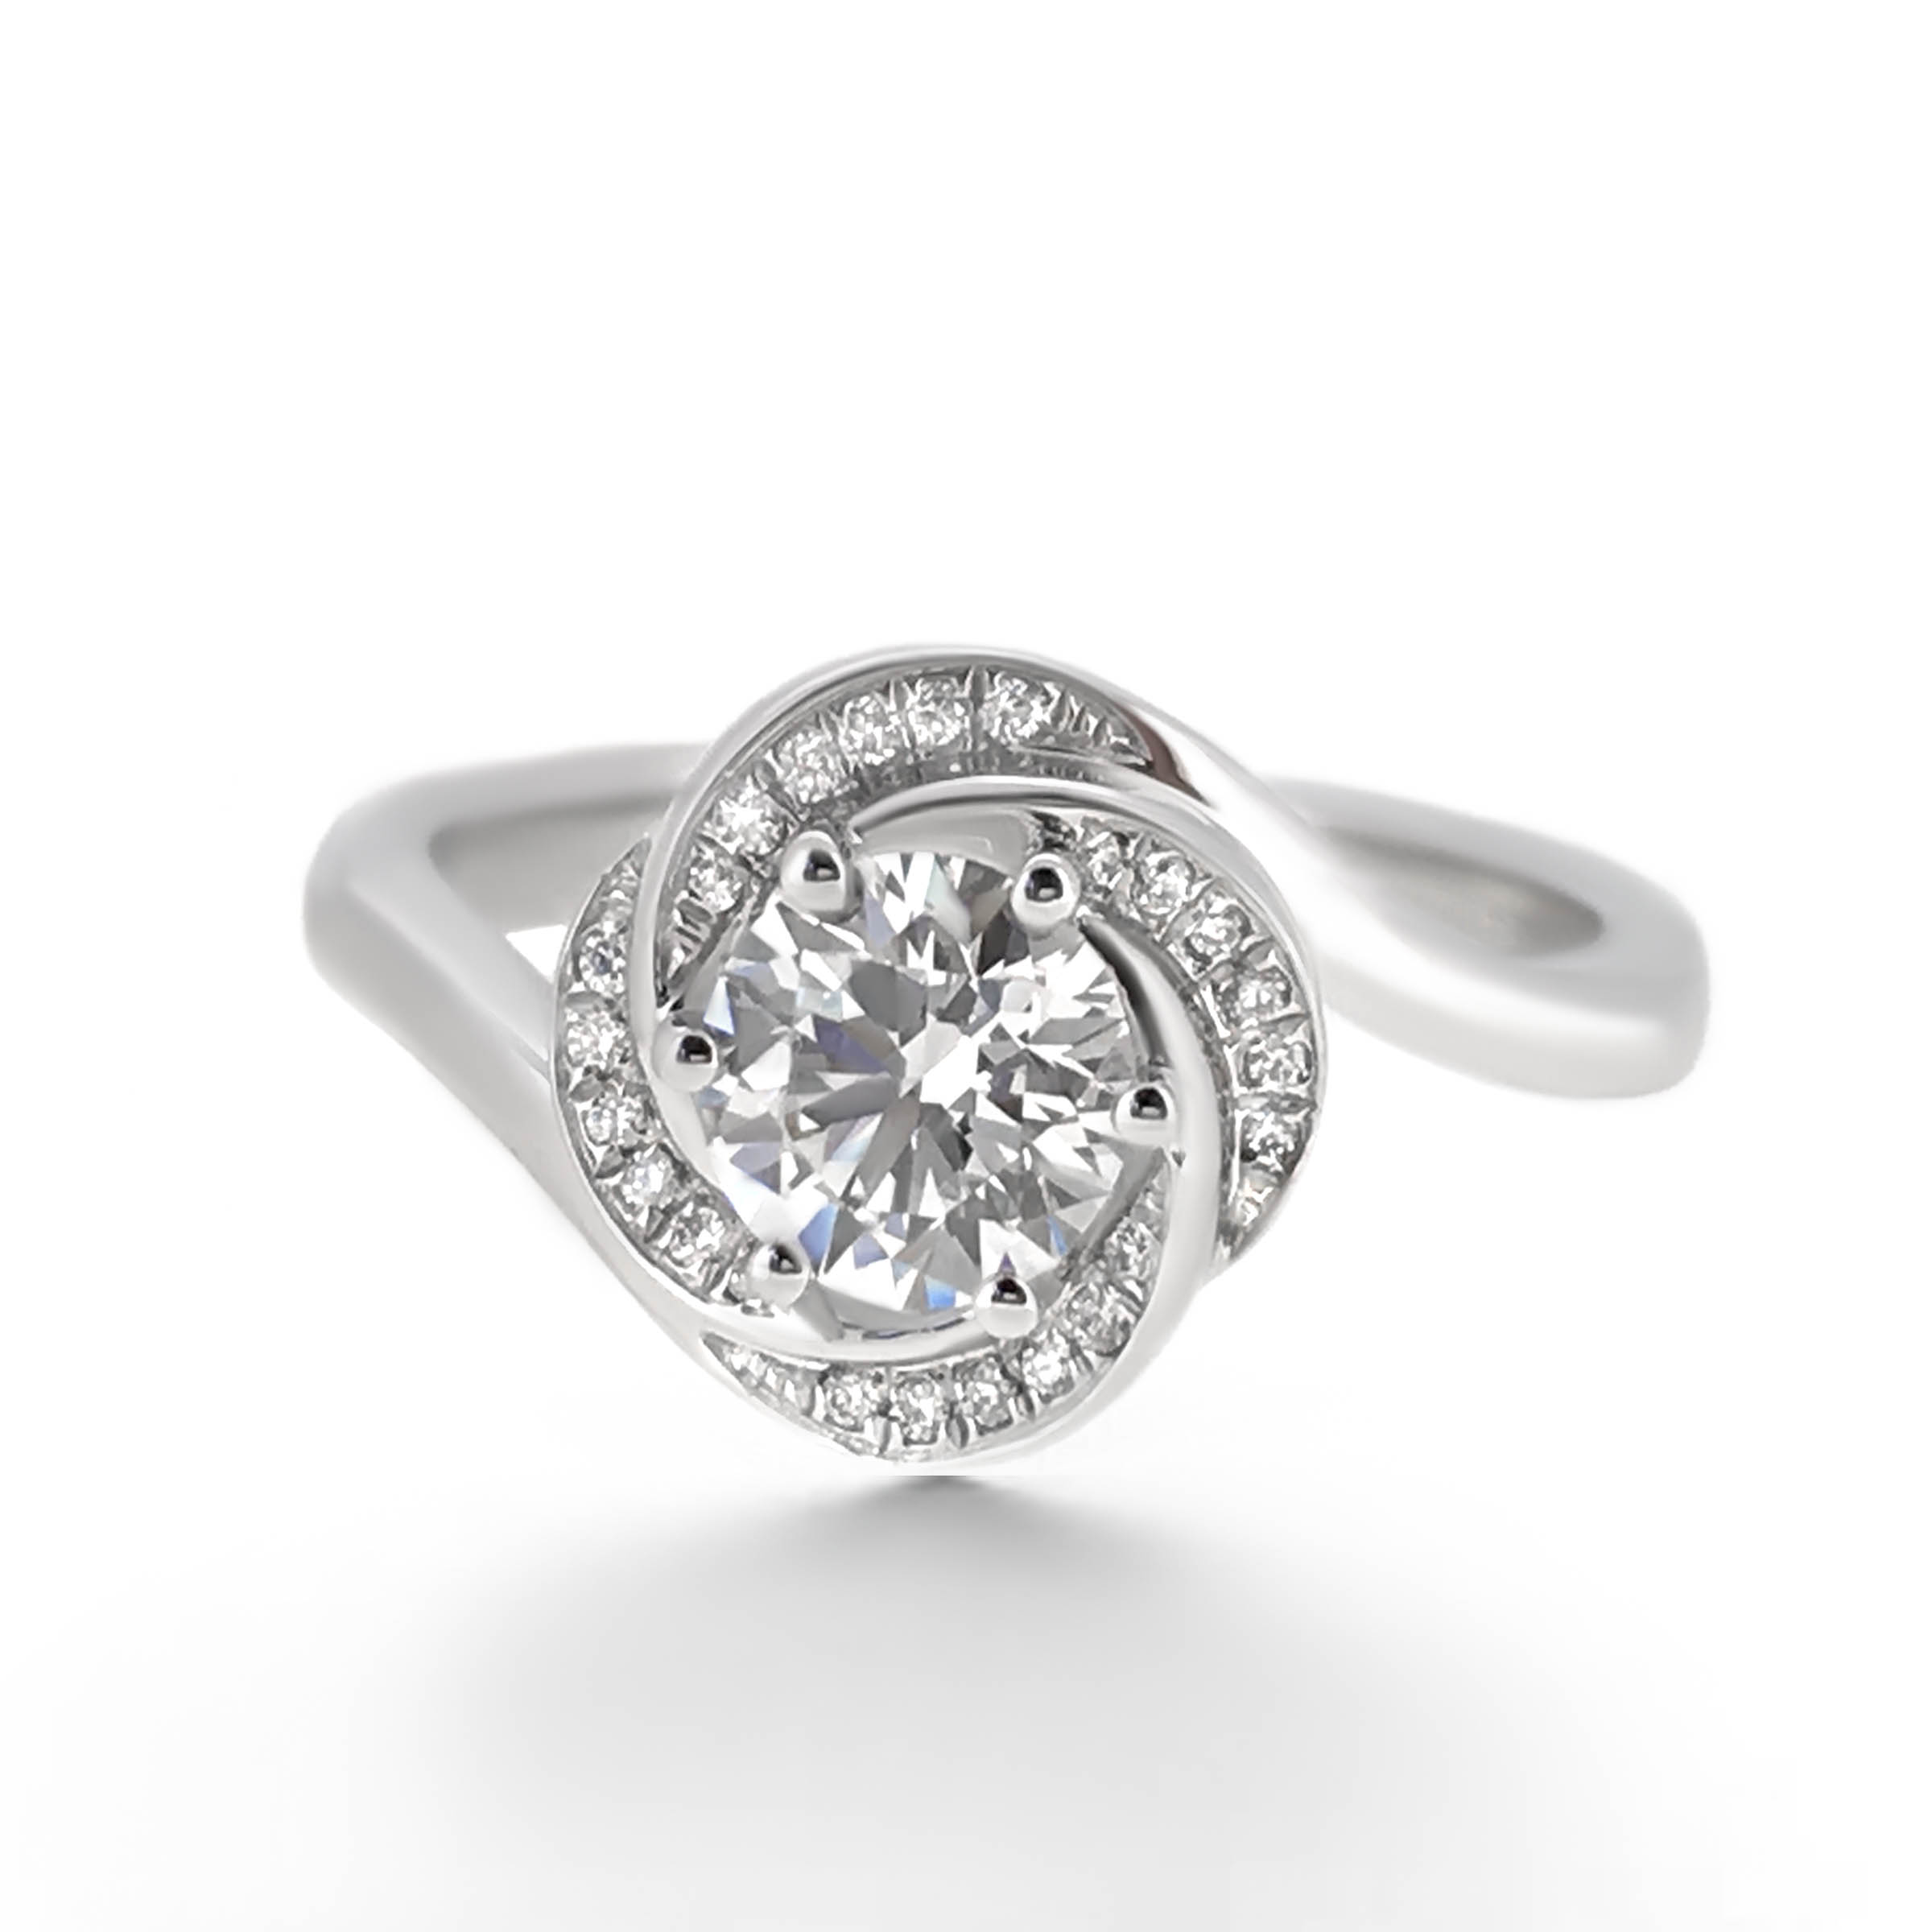 diamond of haywards kong engagement product diamondflowerring next hong design ring rose previous